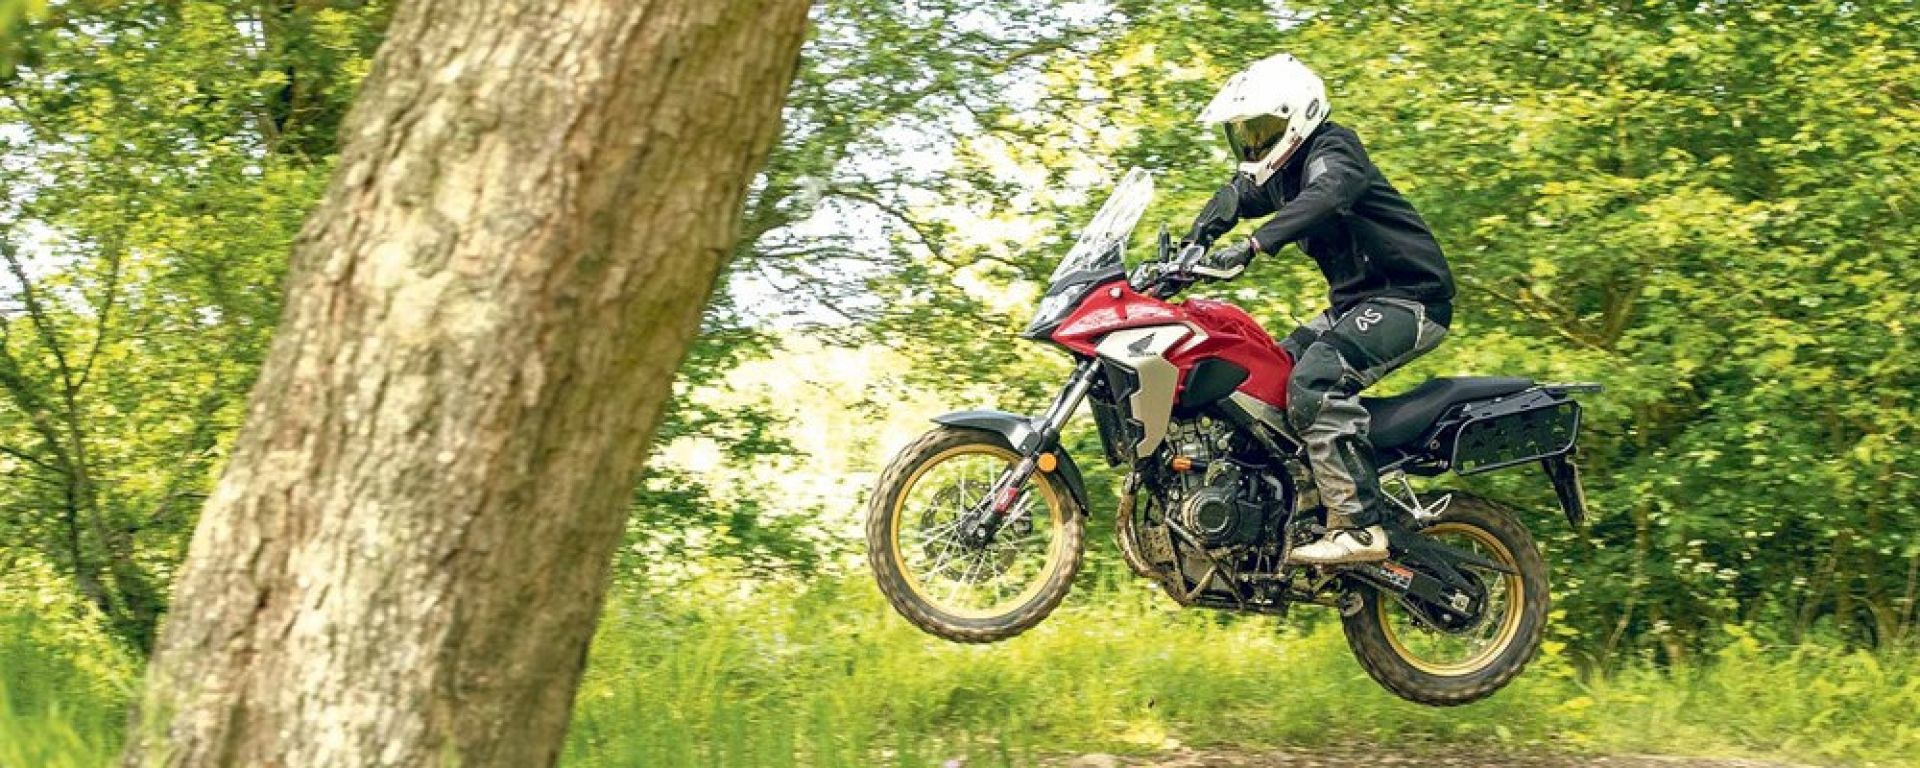 Honda CB500X: Rally Raid la modifica per il vero off-road